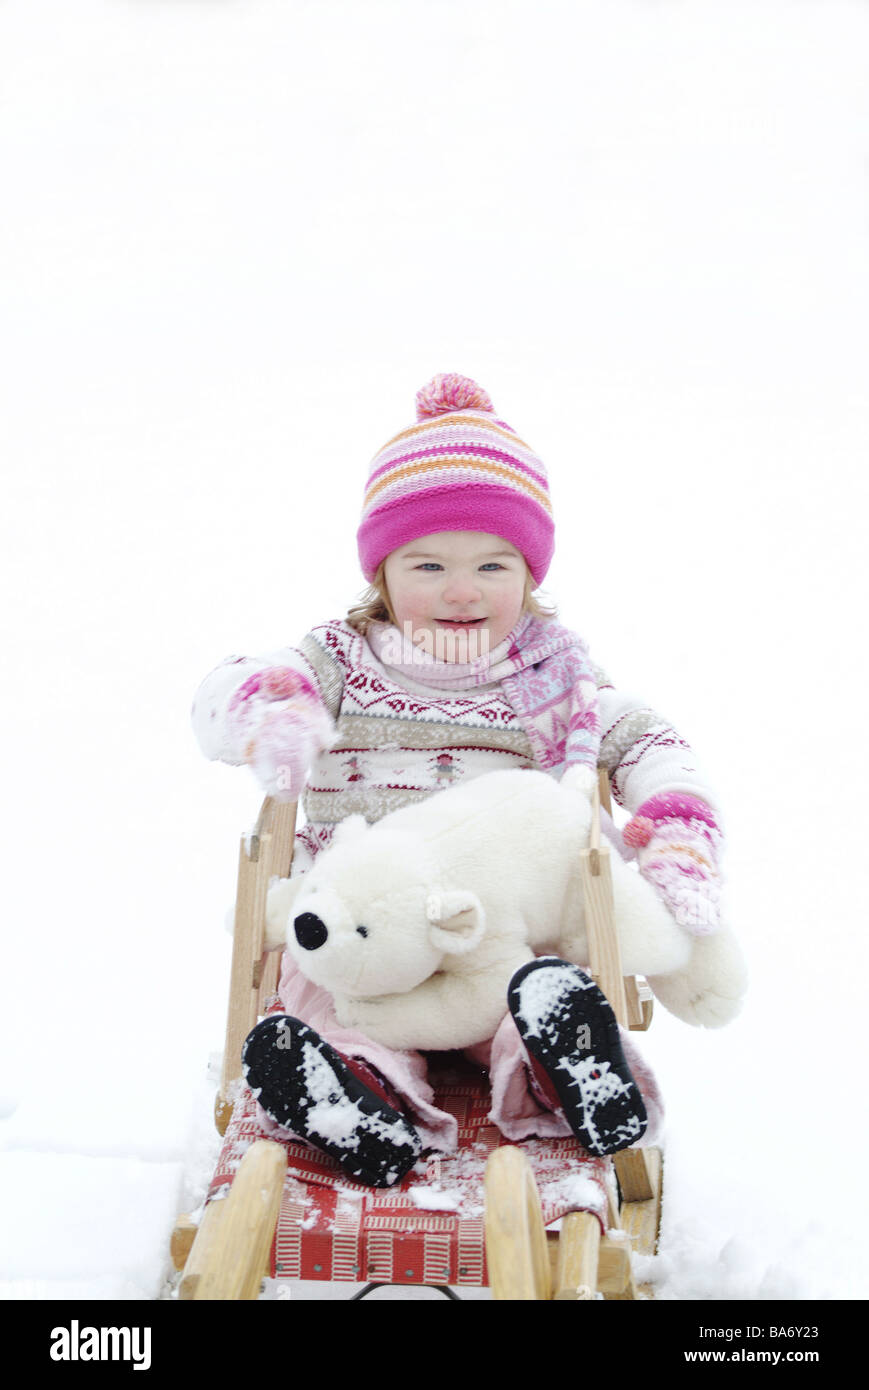 Child girls winter-clothing cheerfully material-animal 'polar bear' sled snow people toddler 2-4 years cap - Stock Image